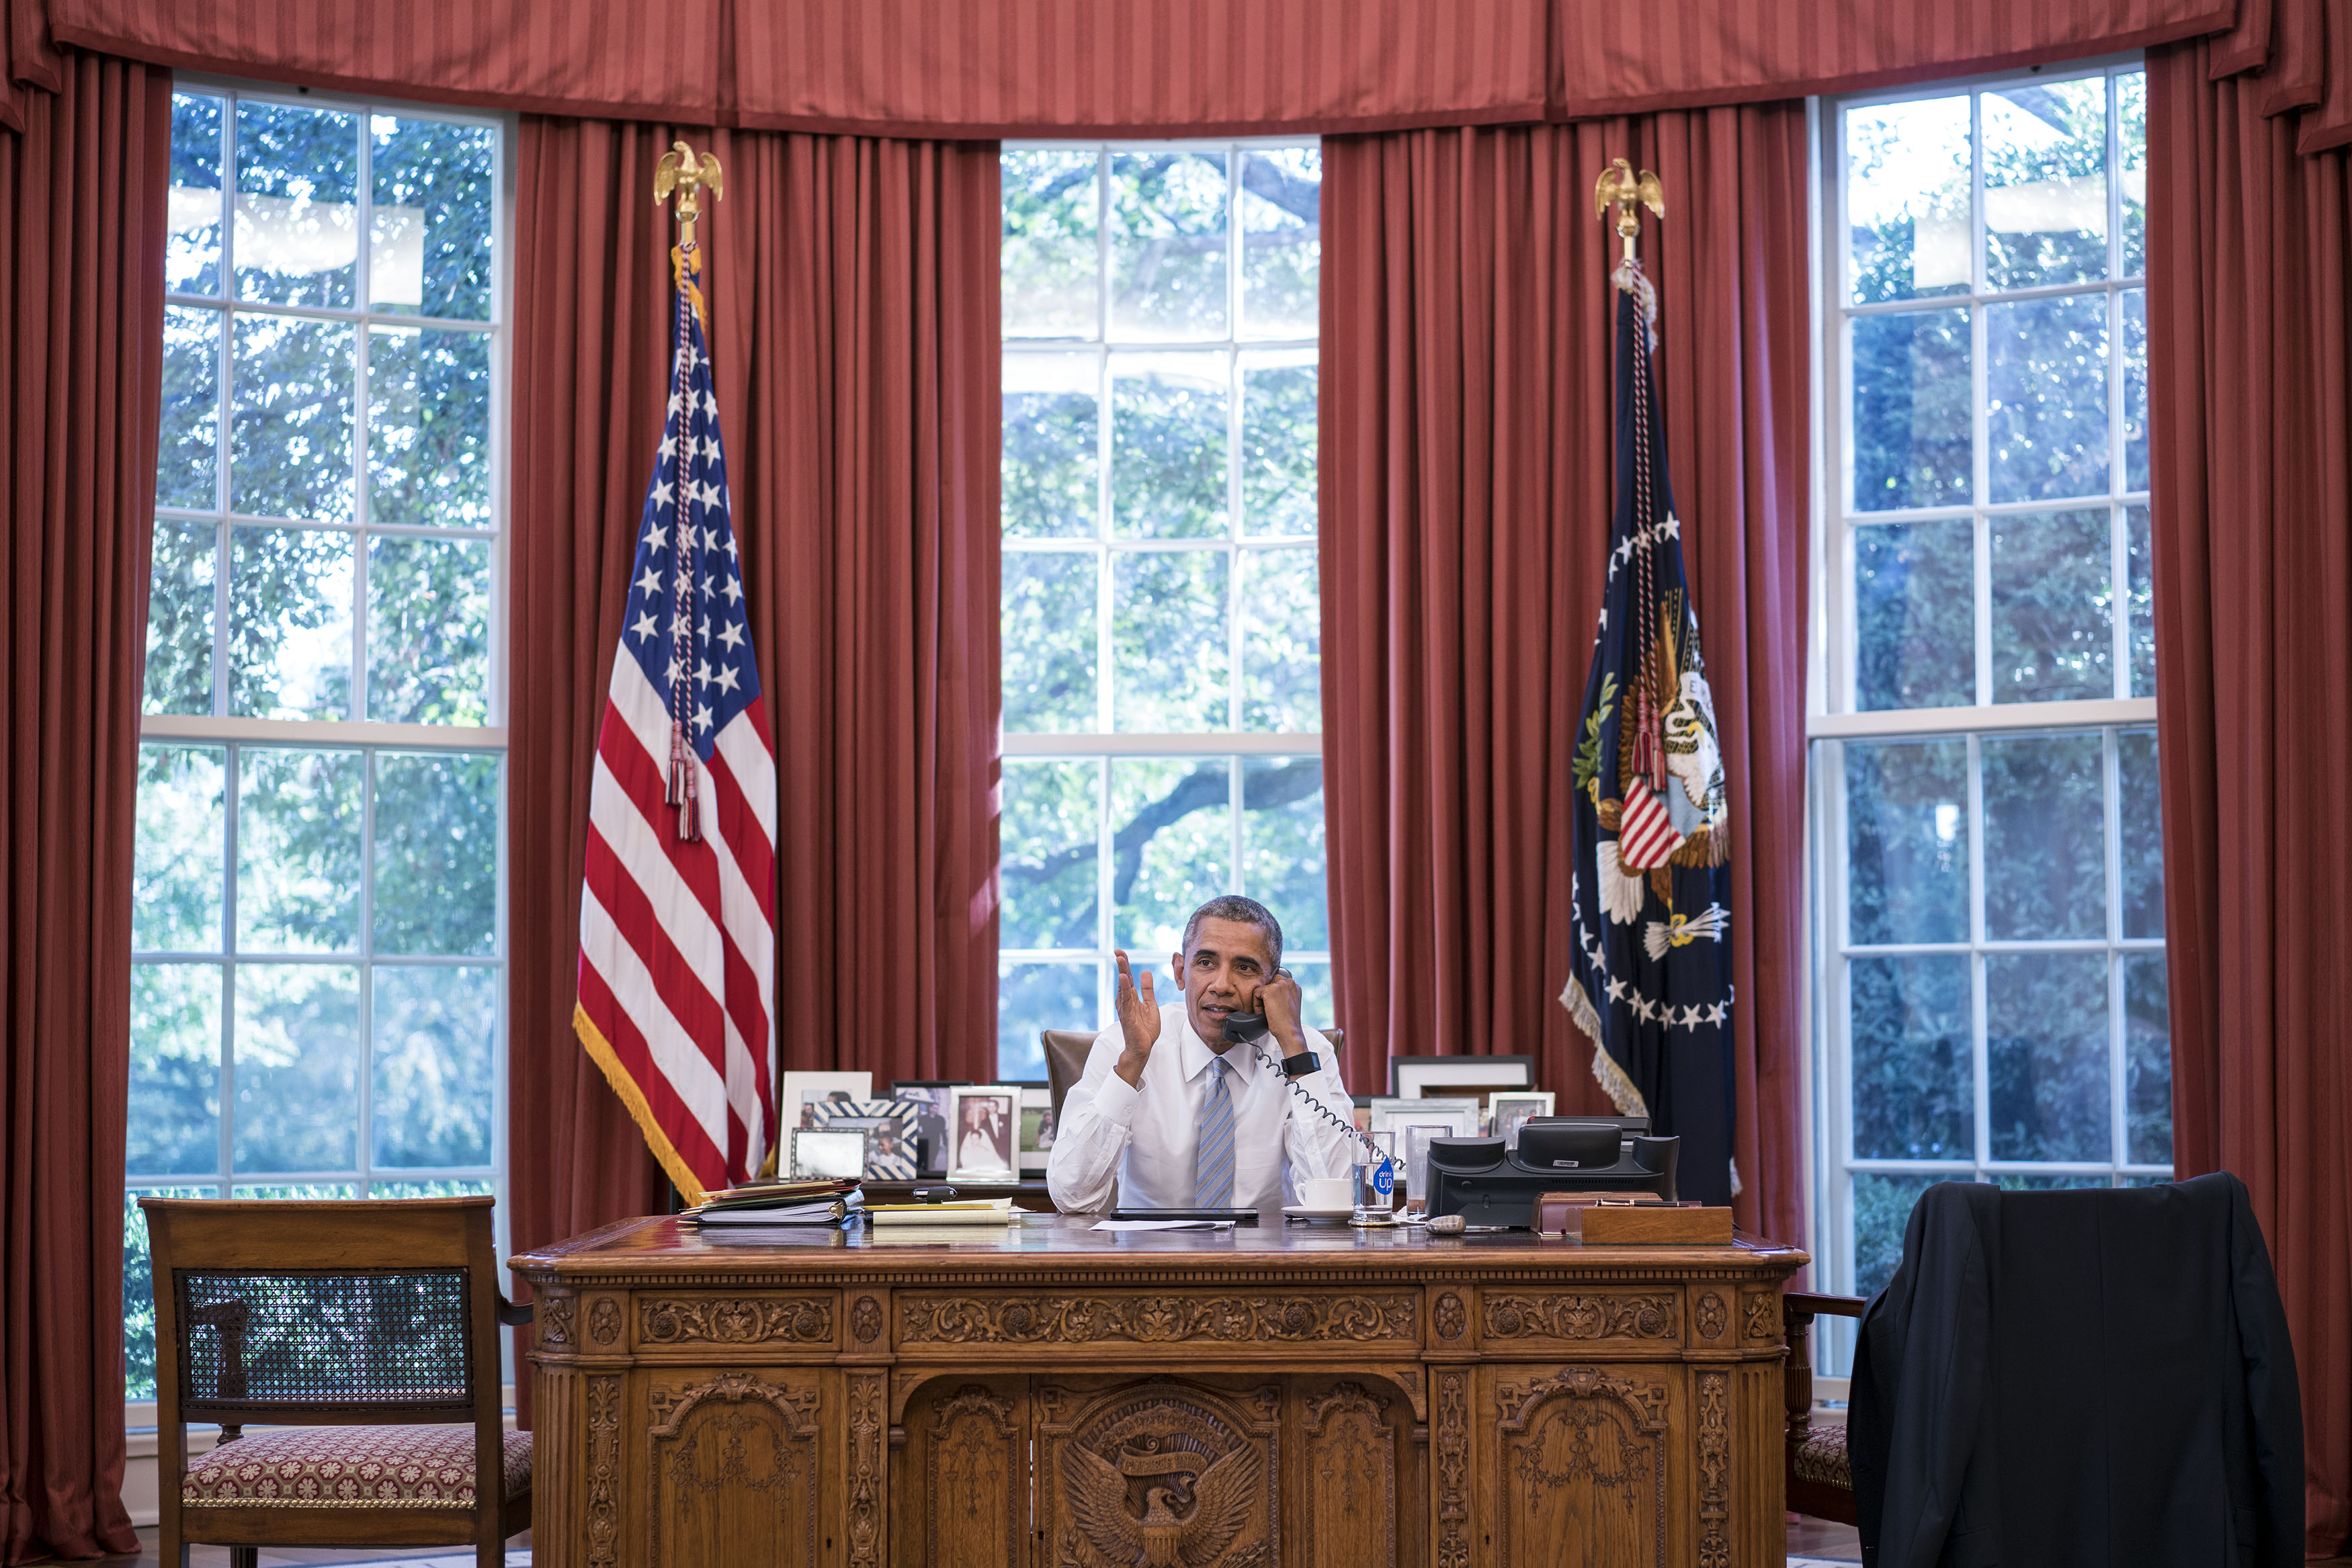 Why The Obama Administration Rejected The Keystone XL Pipeline